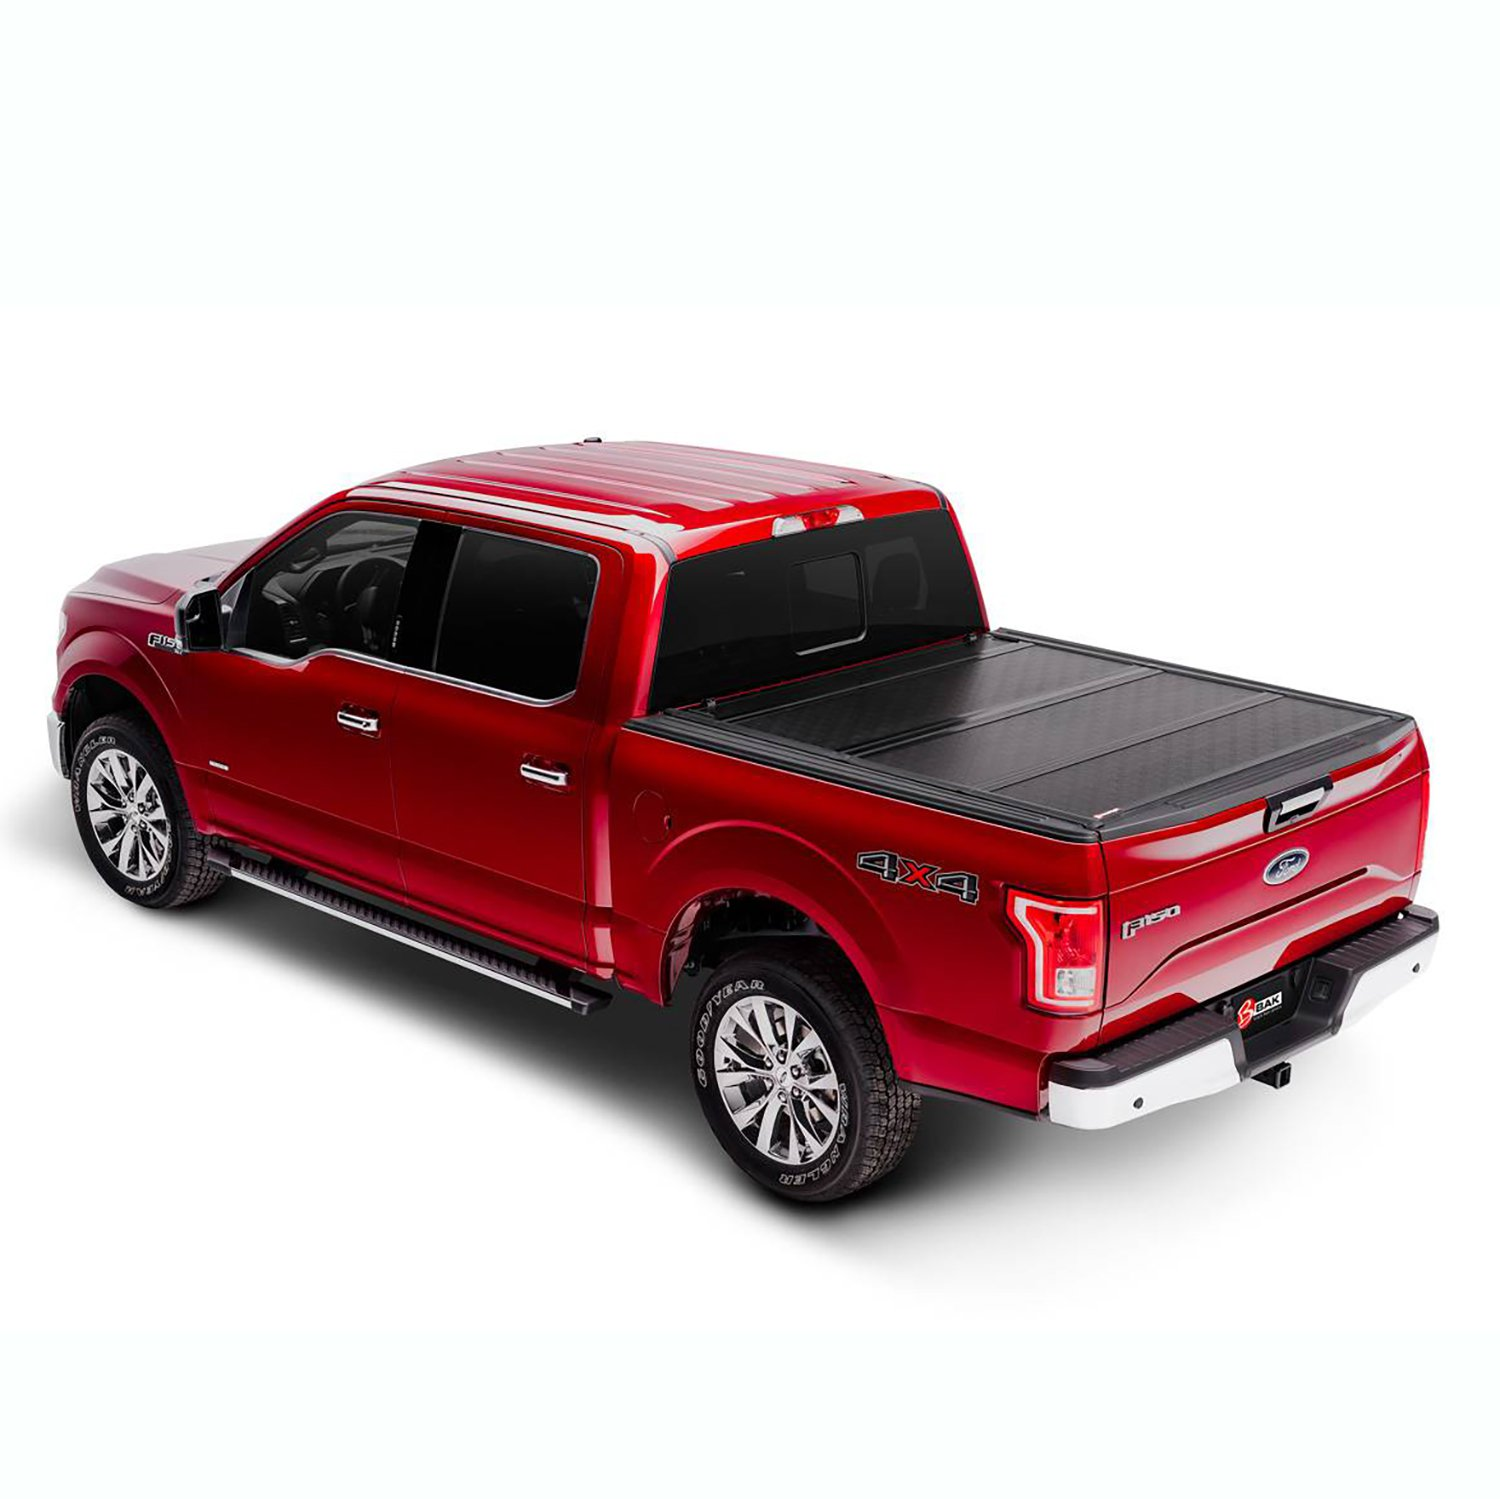 Bak Industries Hard Roll Up Tonneau Truck Bed Cover for 2015-2018 Ford F 150